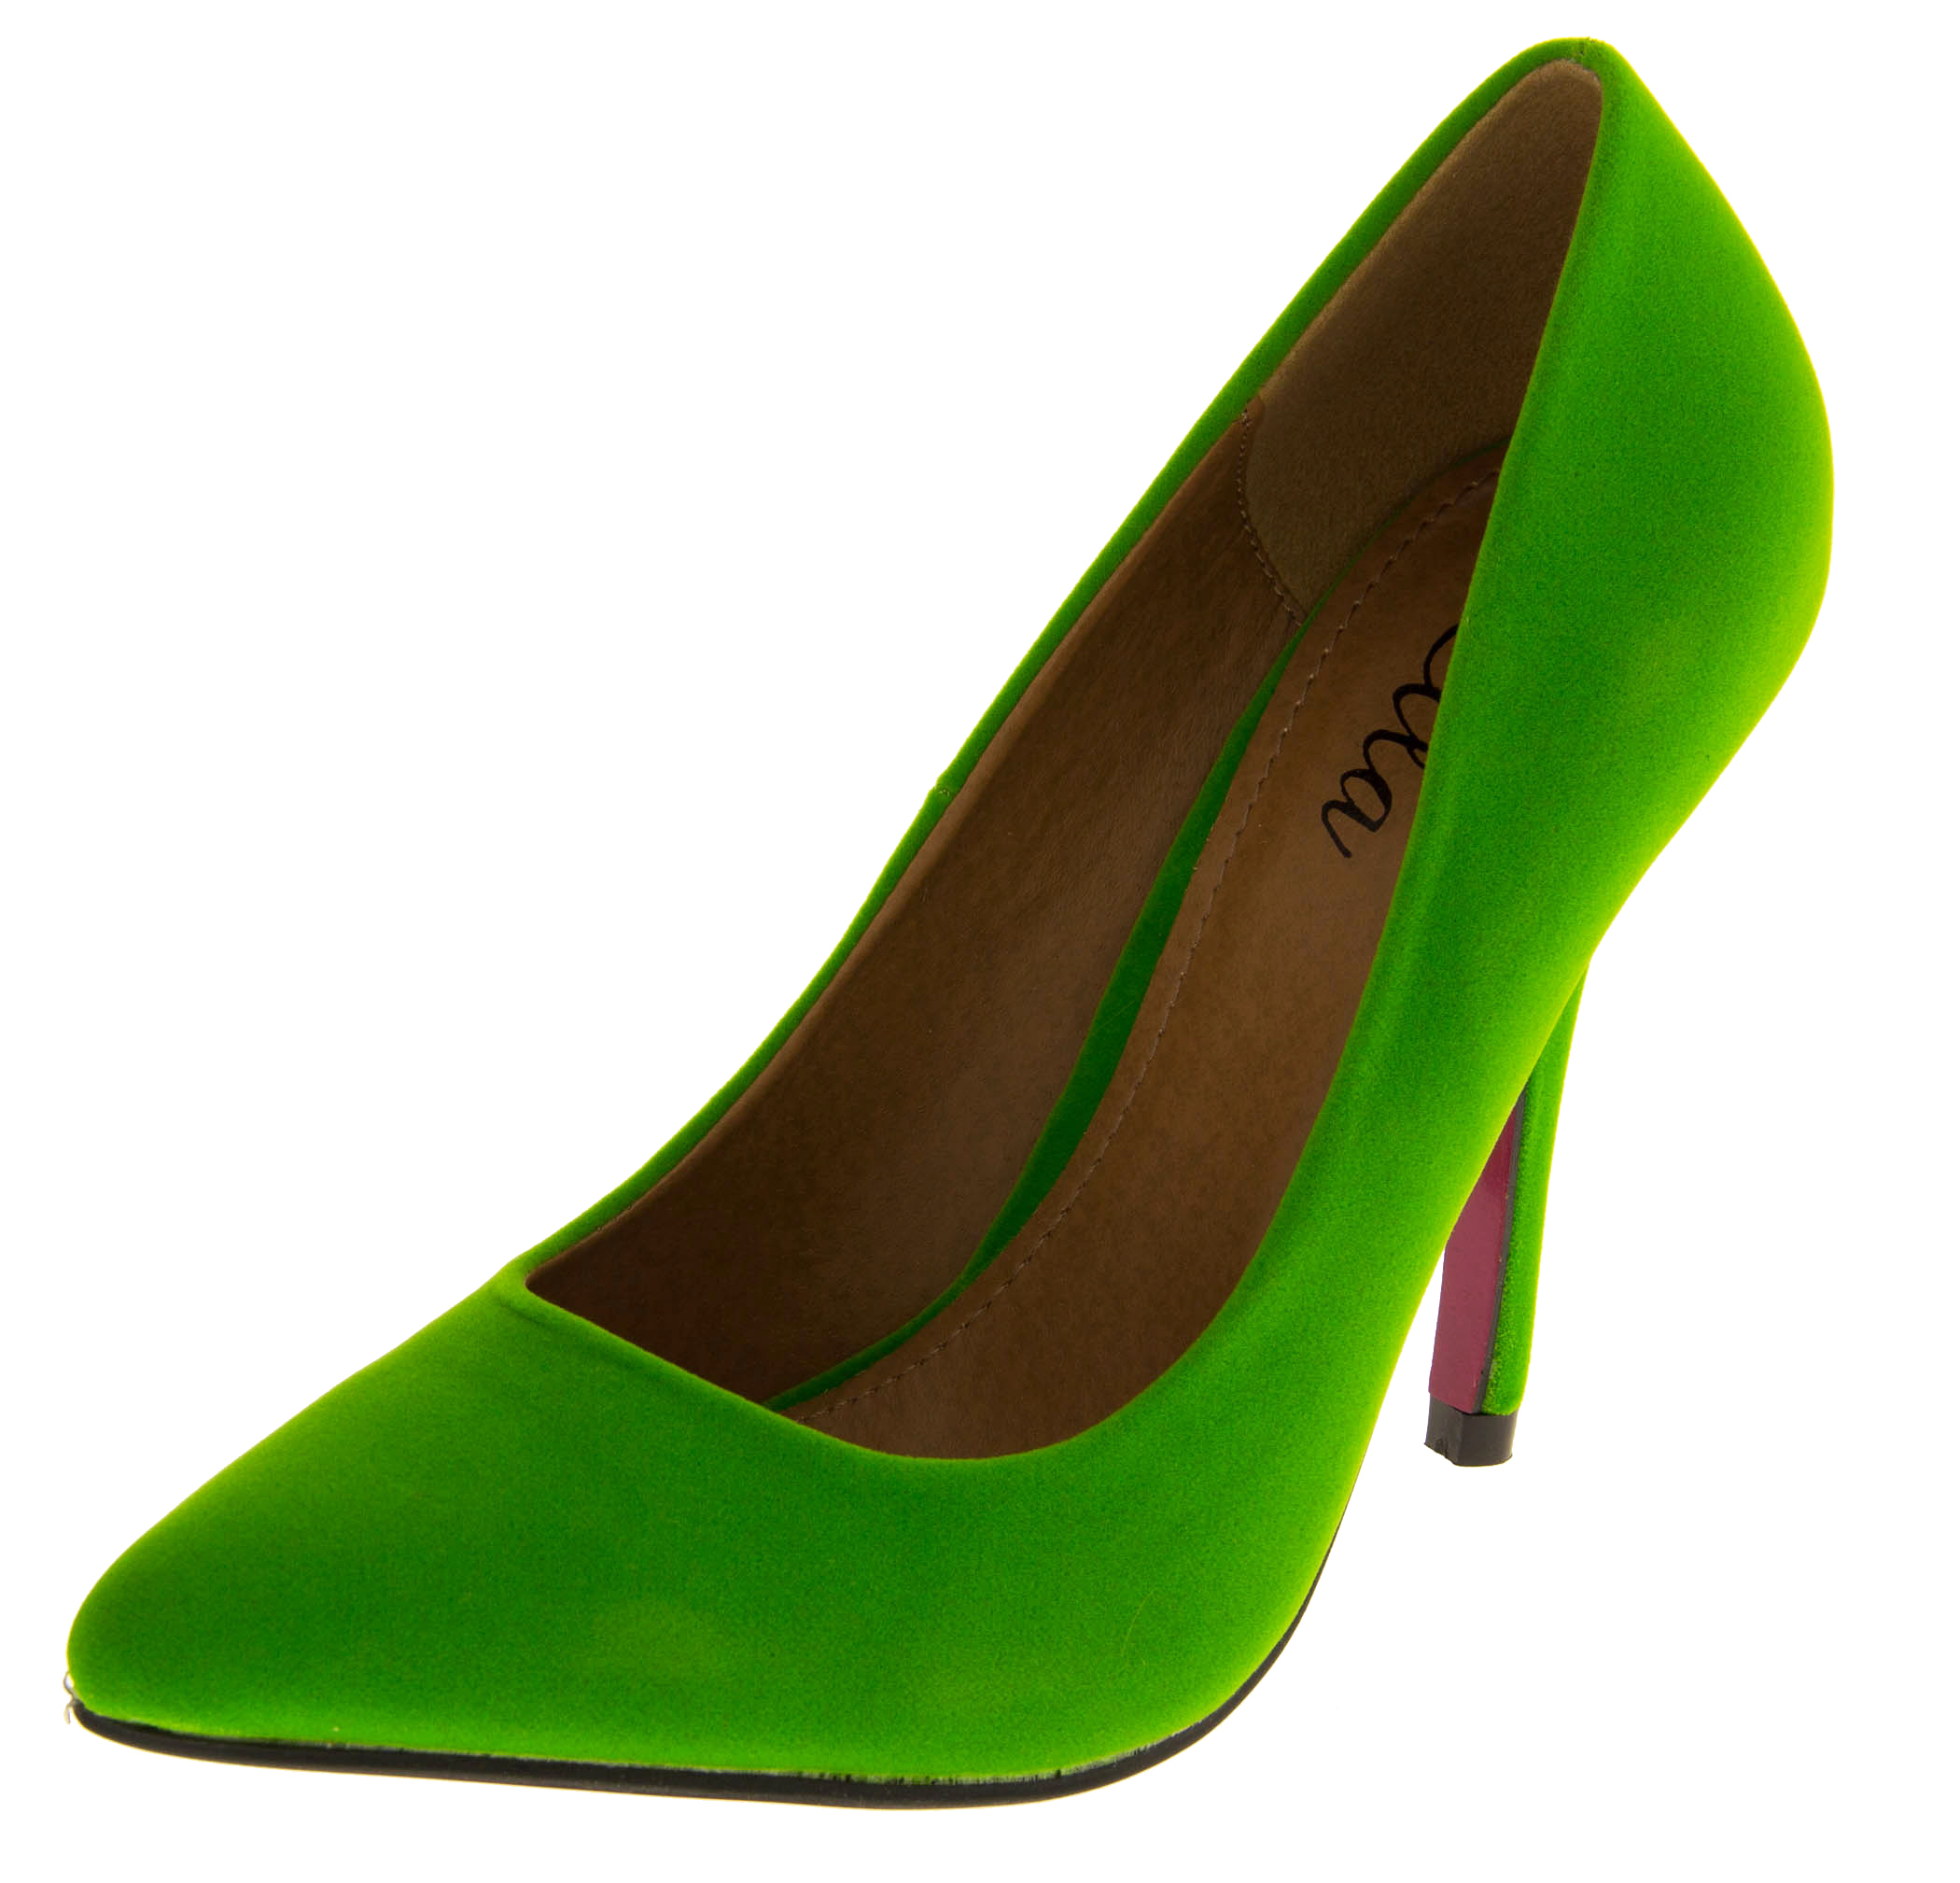 Shop eBay for great deals on Green Shoes for Women. You'll find new or used products in Green Shoes for Women on eBay. Free shipping on selected items.